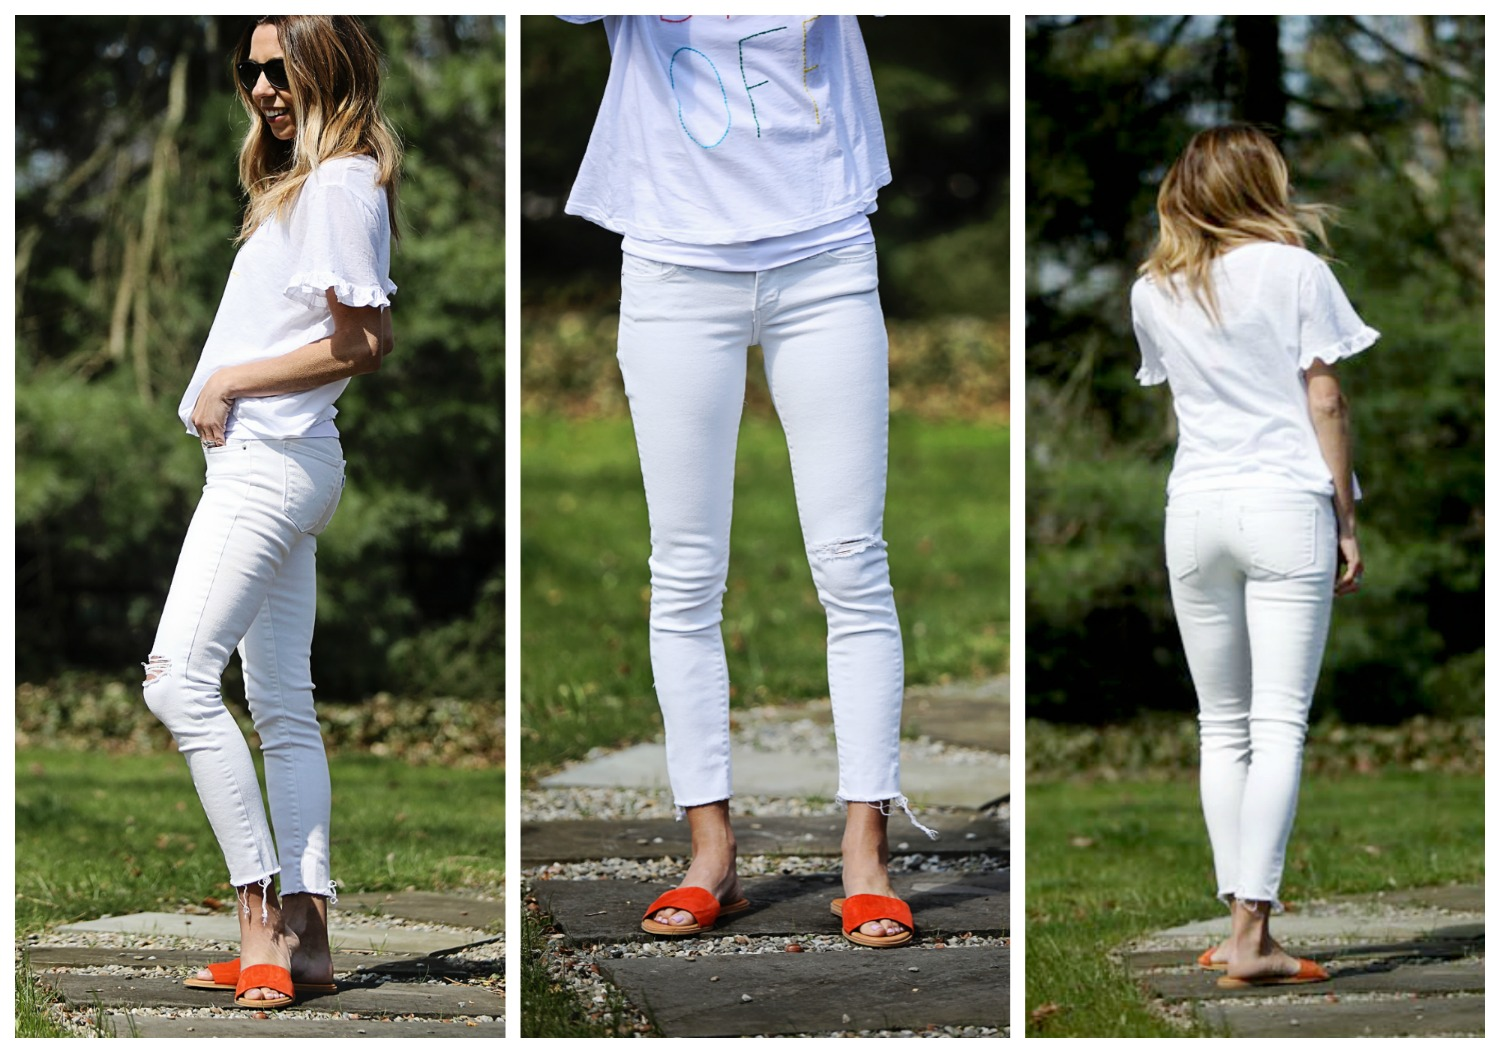 The Motherchic wearing white jeans by Levi's